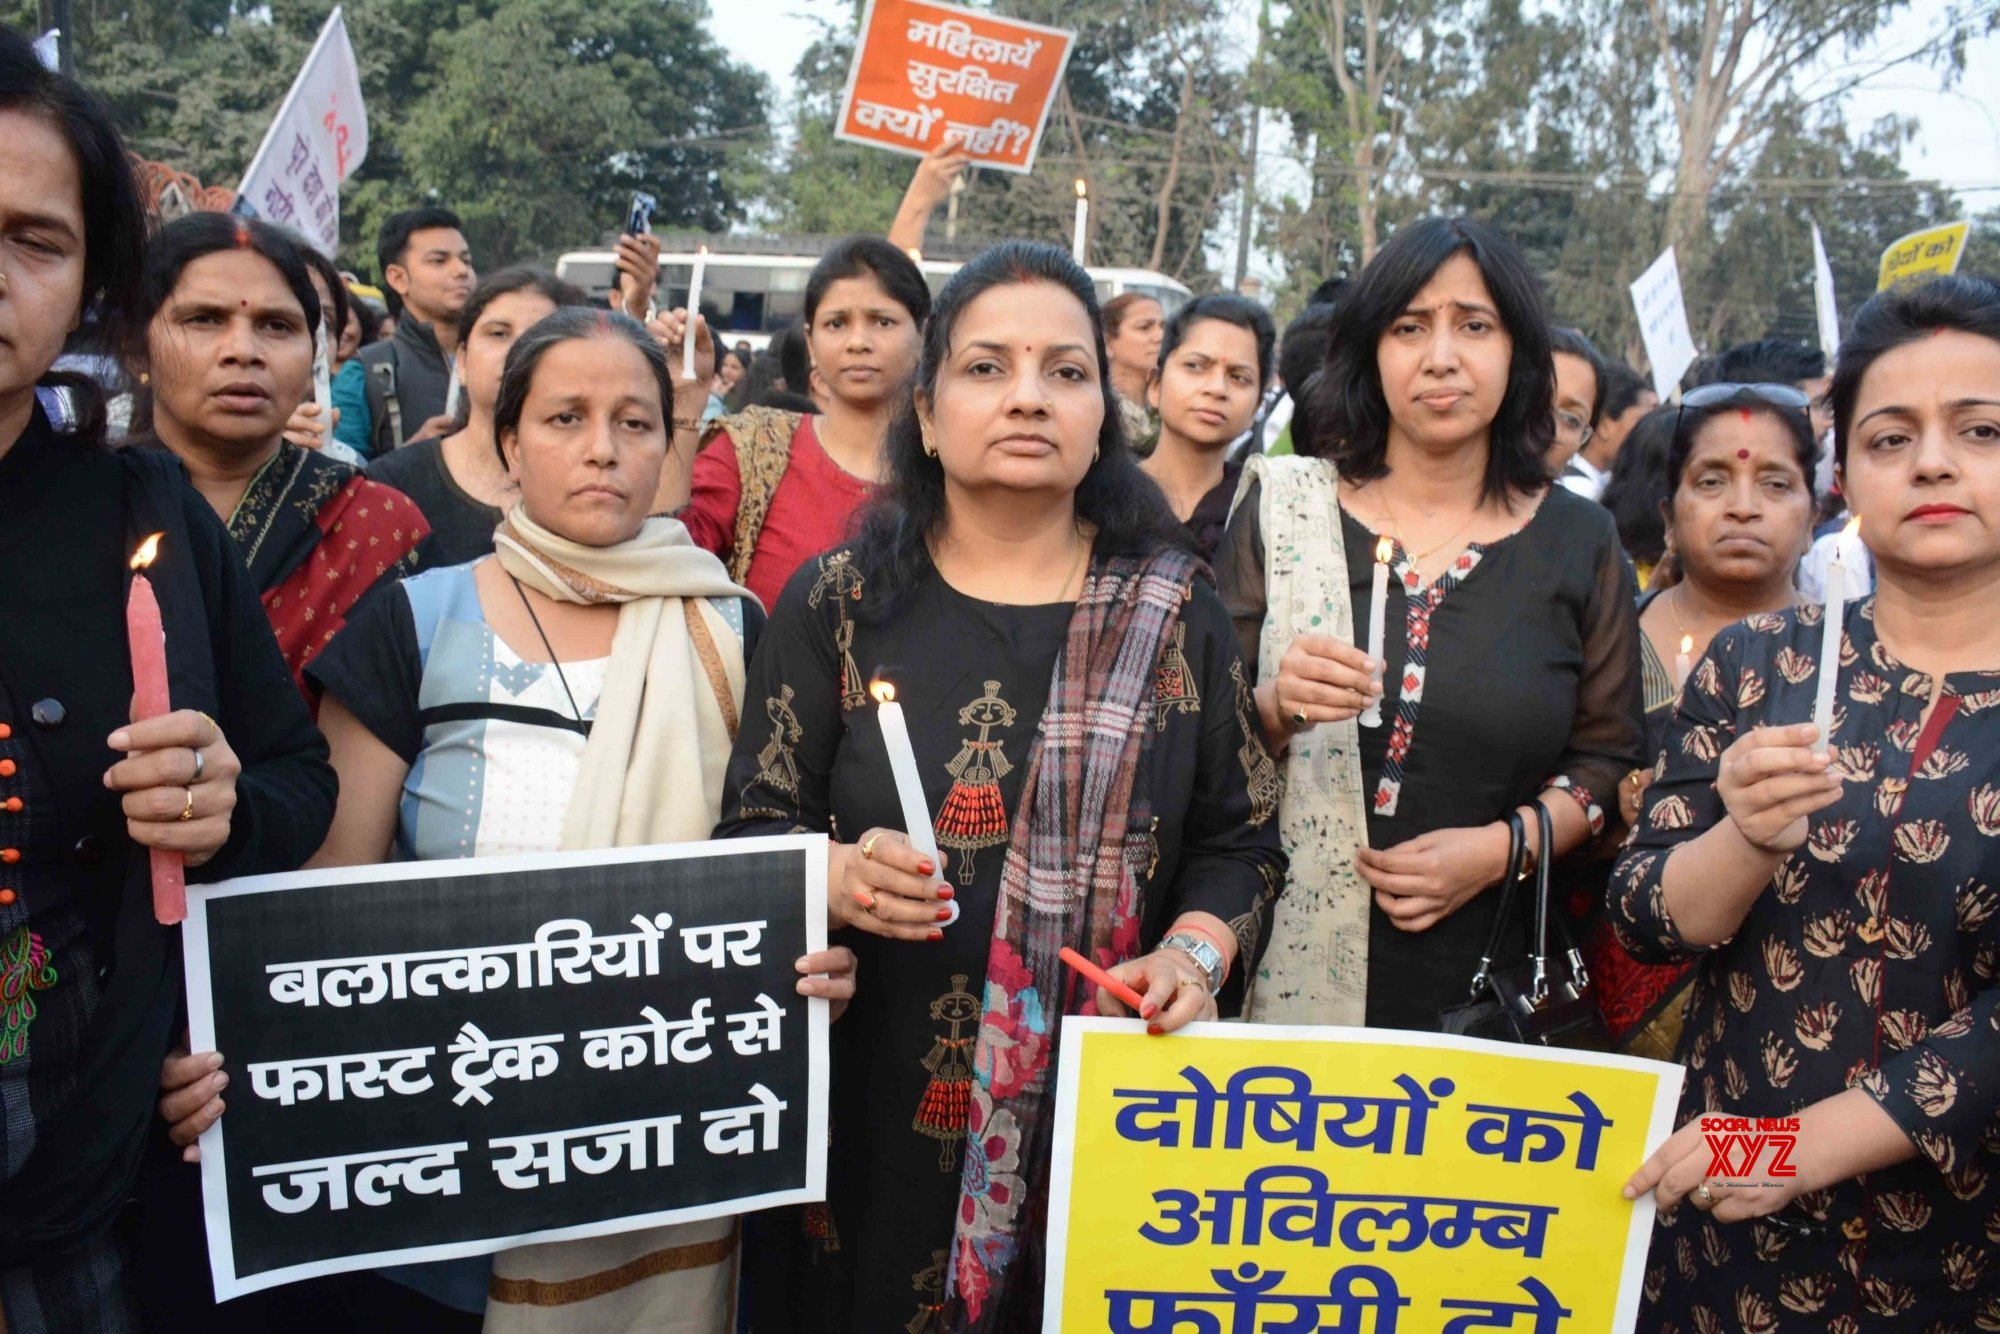 Patna: Women activists protest against Hyderabad gang rape - murder #Gallery